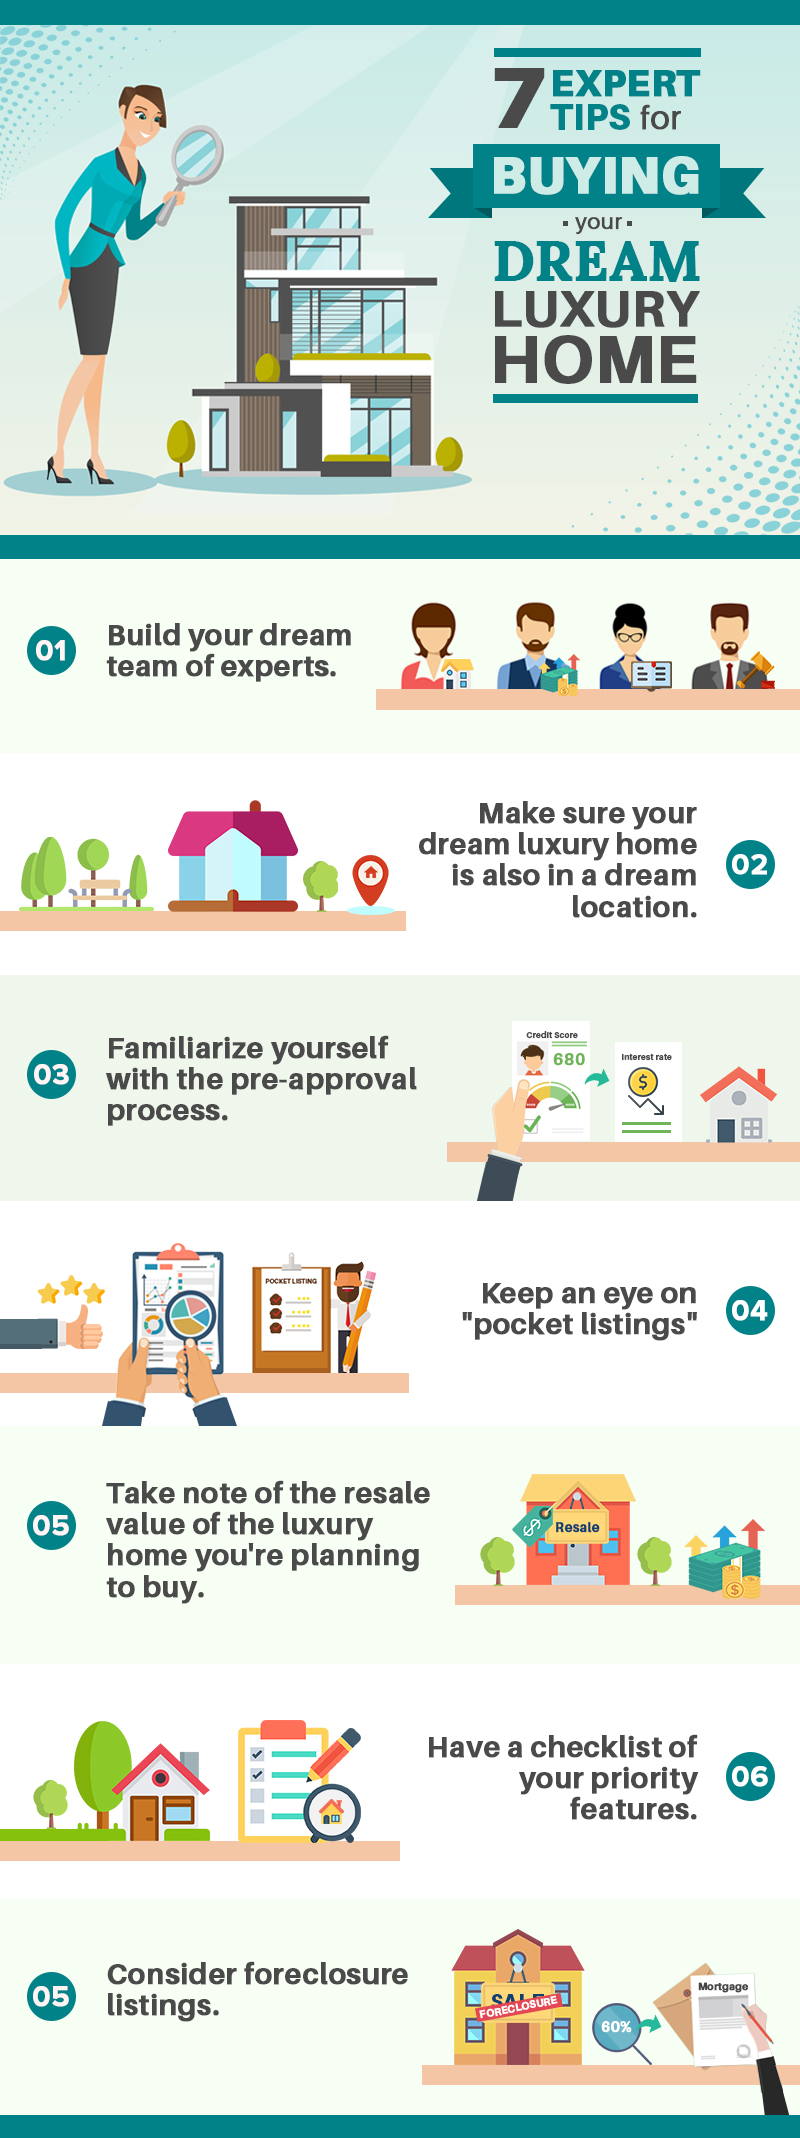 7 Expert Tips For Buying Your Dream Luxury Home